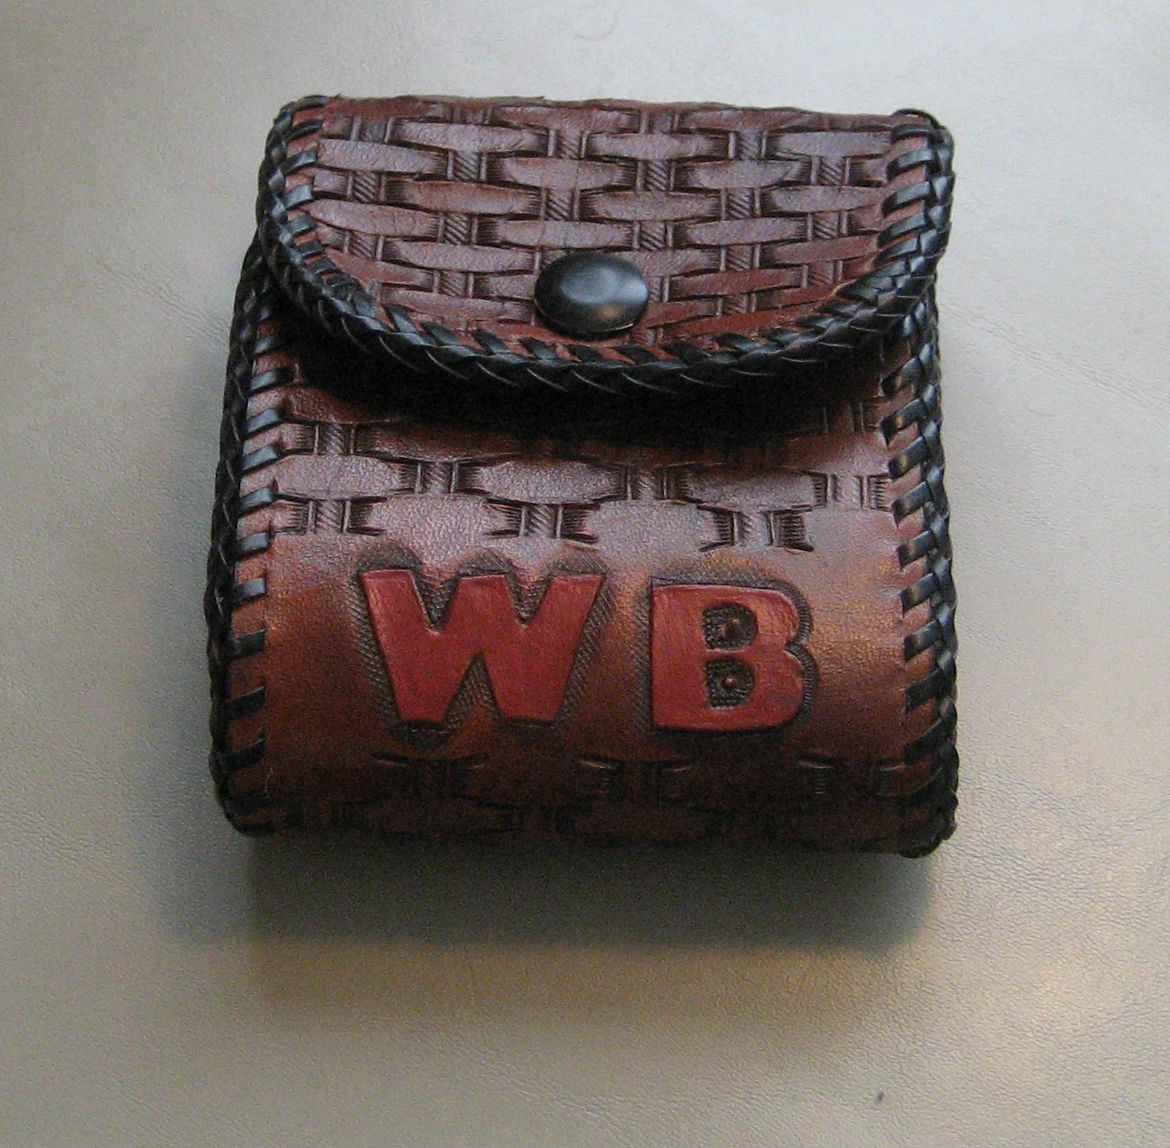 Cartgride belt case